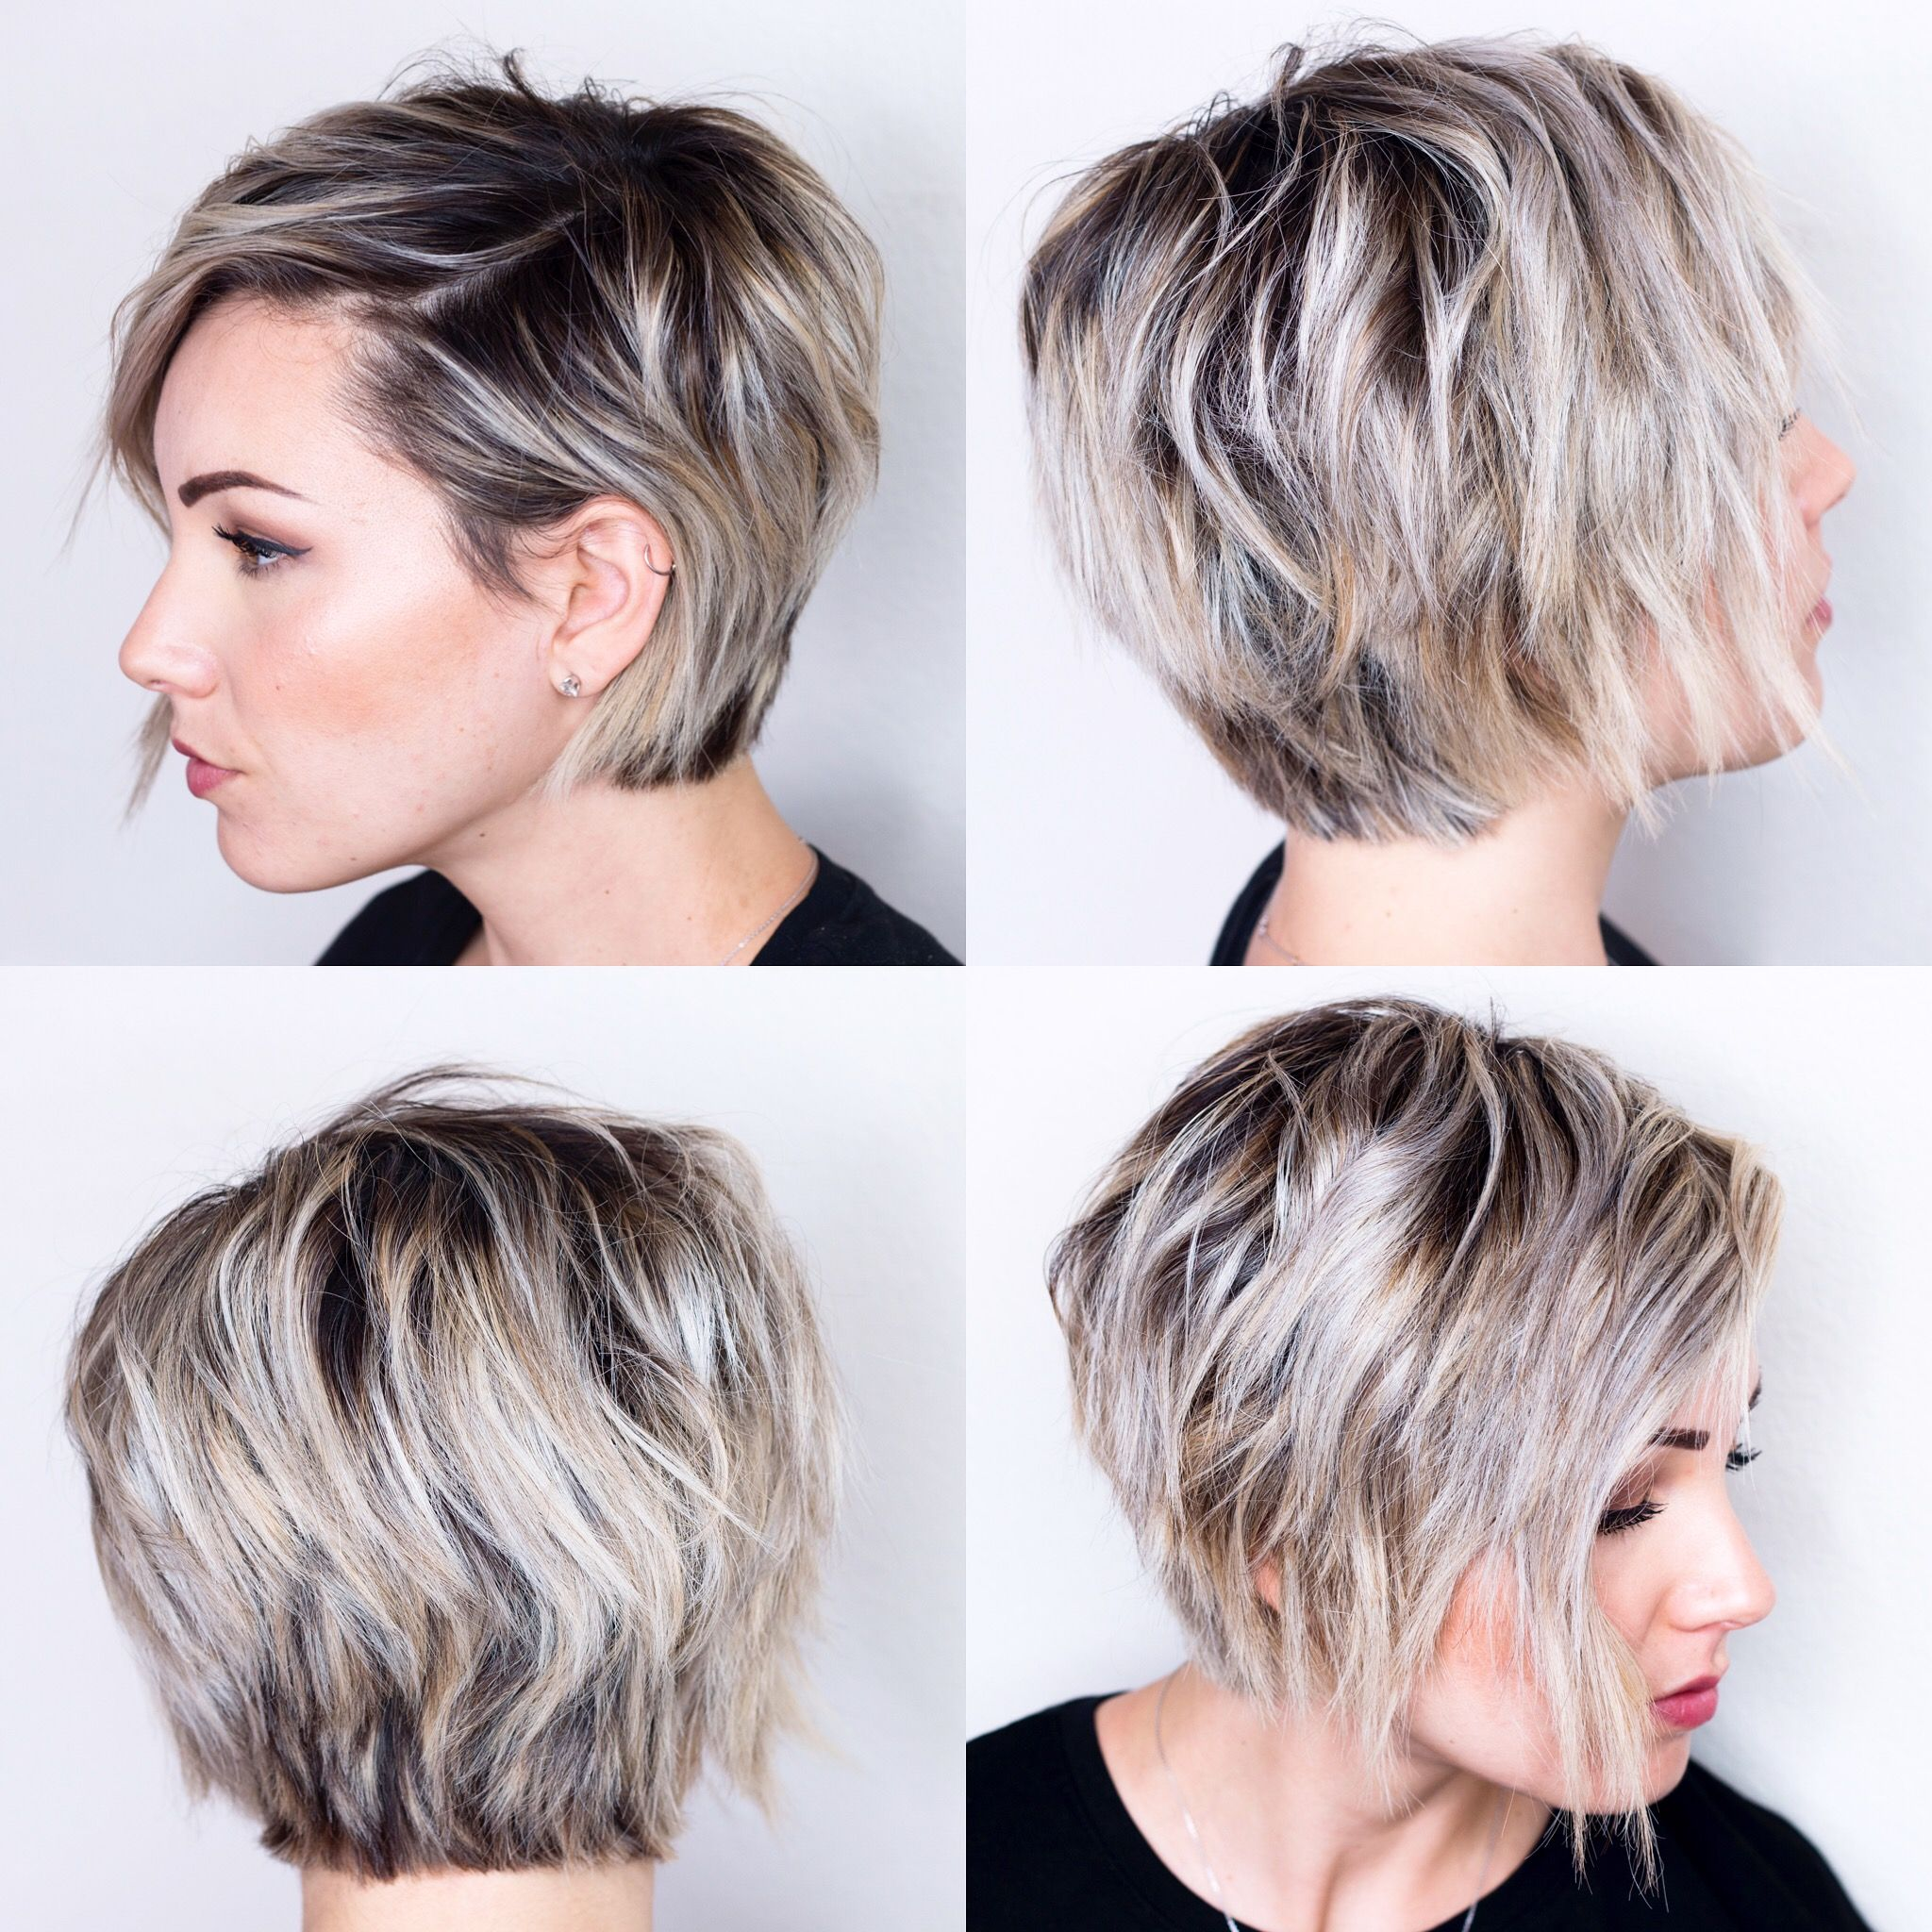 360 View Of Short Hair Growing Out Short Hair Styles Oval Face Haircuts Oval Face Hairstyles